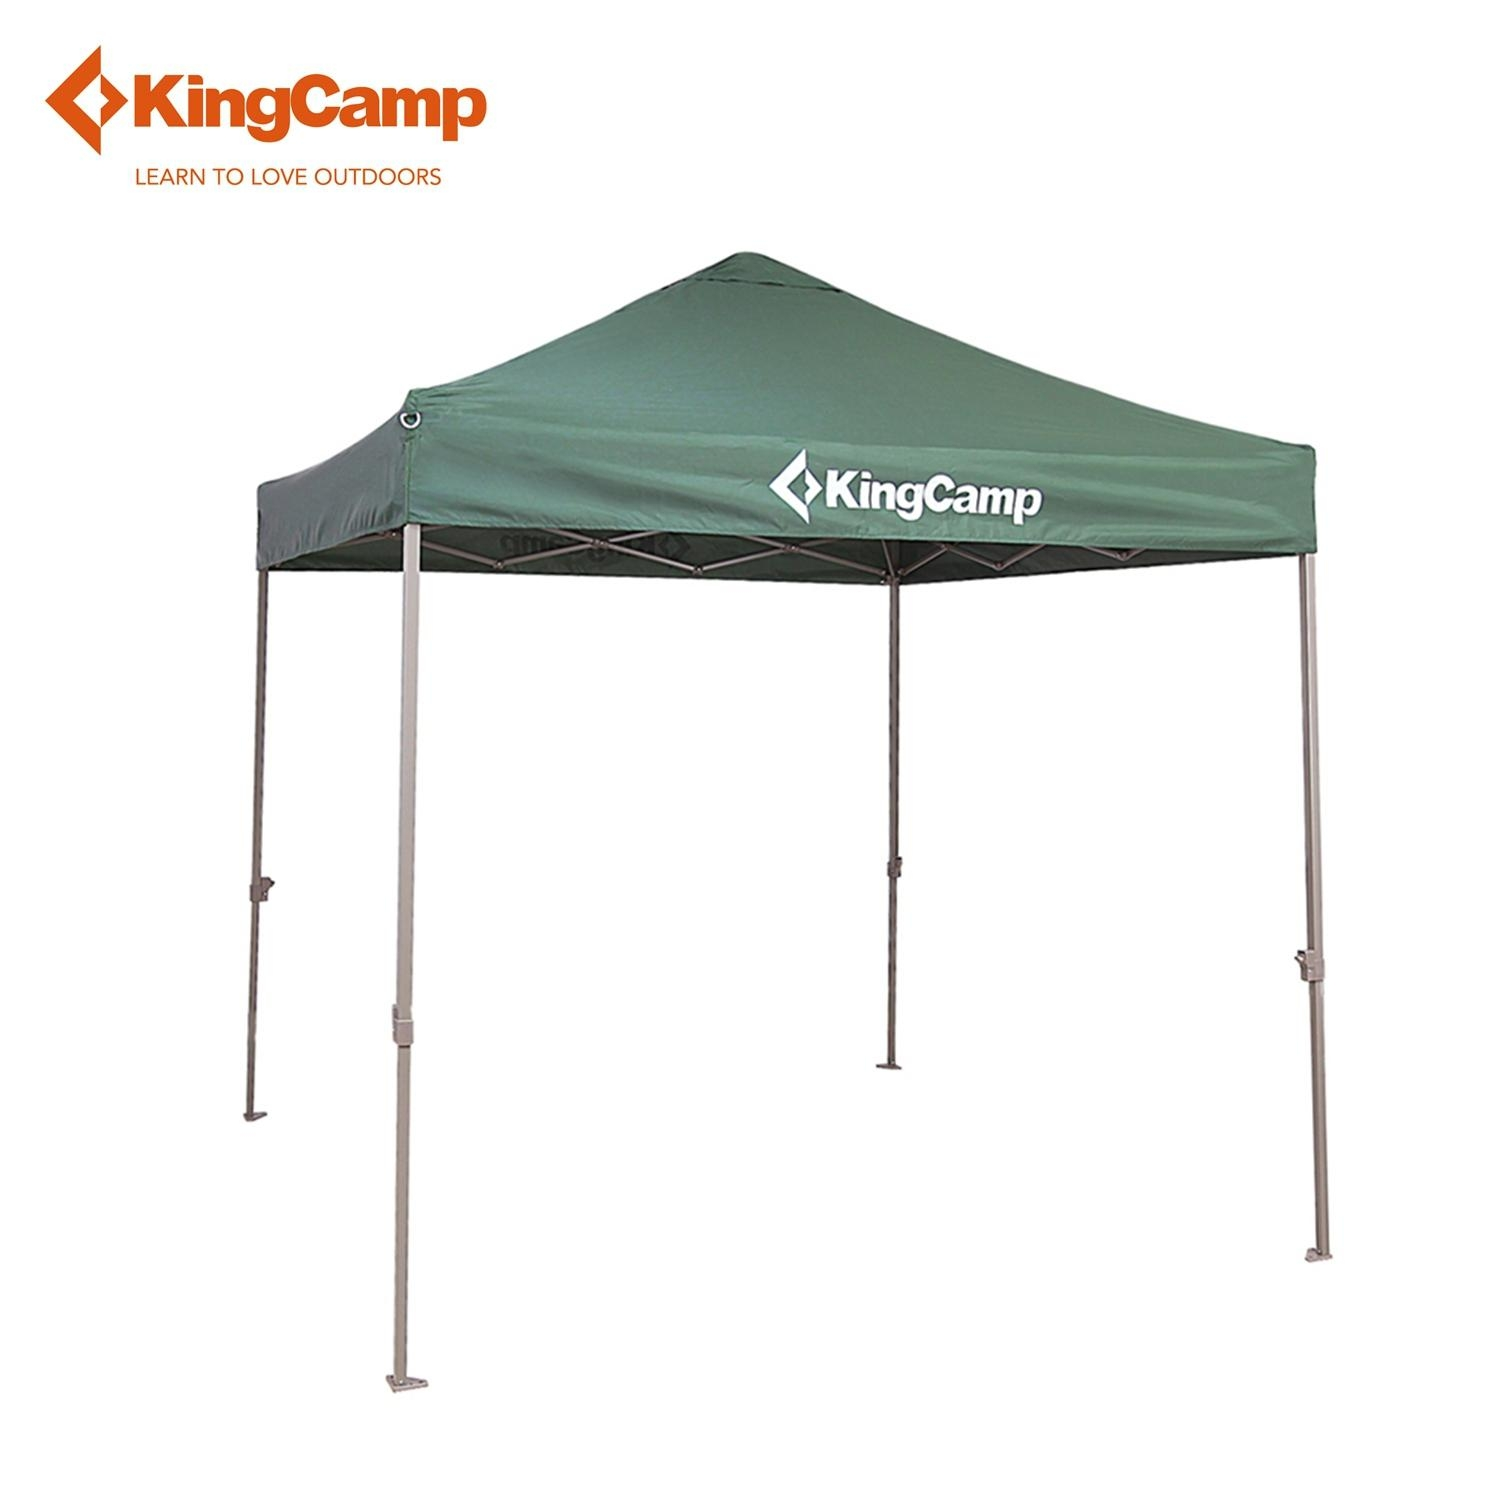 kingcamp portable easy up sun shelter top grade outdoor canopy tent for patio party picnic commercial fair shelter car